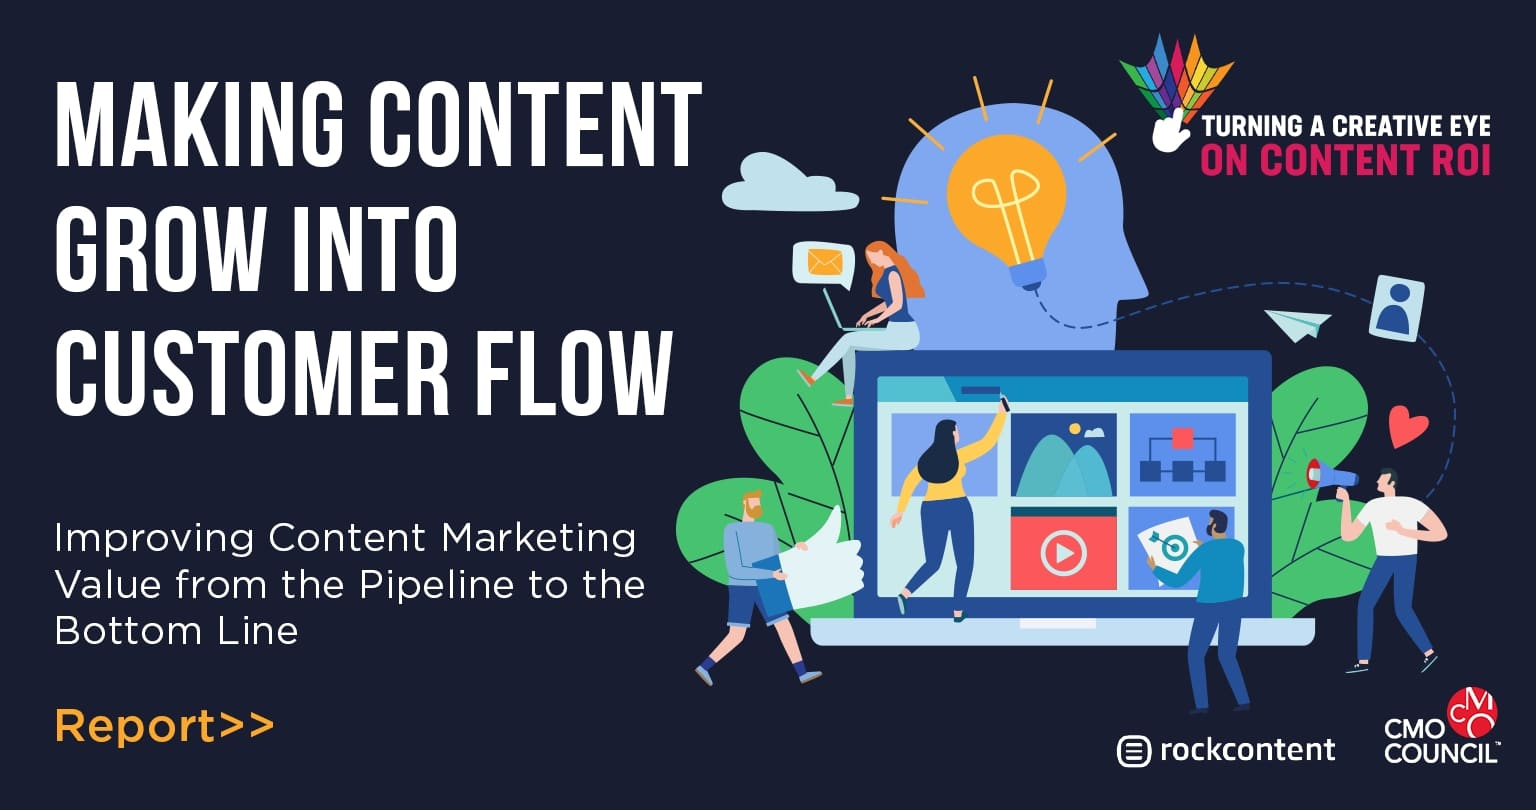 MAKING CONTENT GROW INTO CUSTOMER FLOW